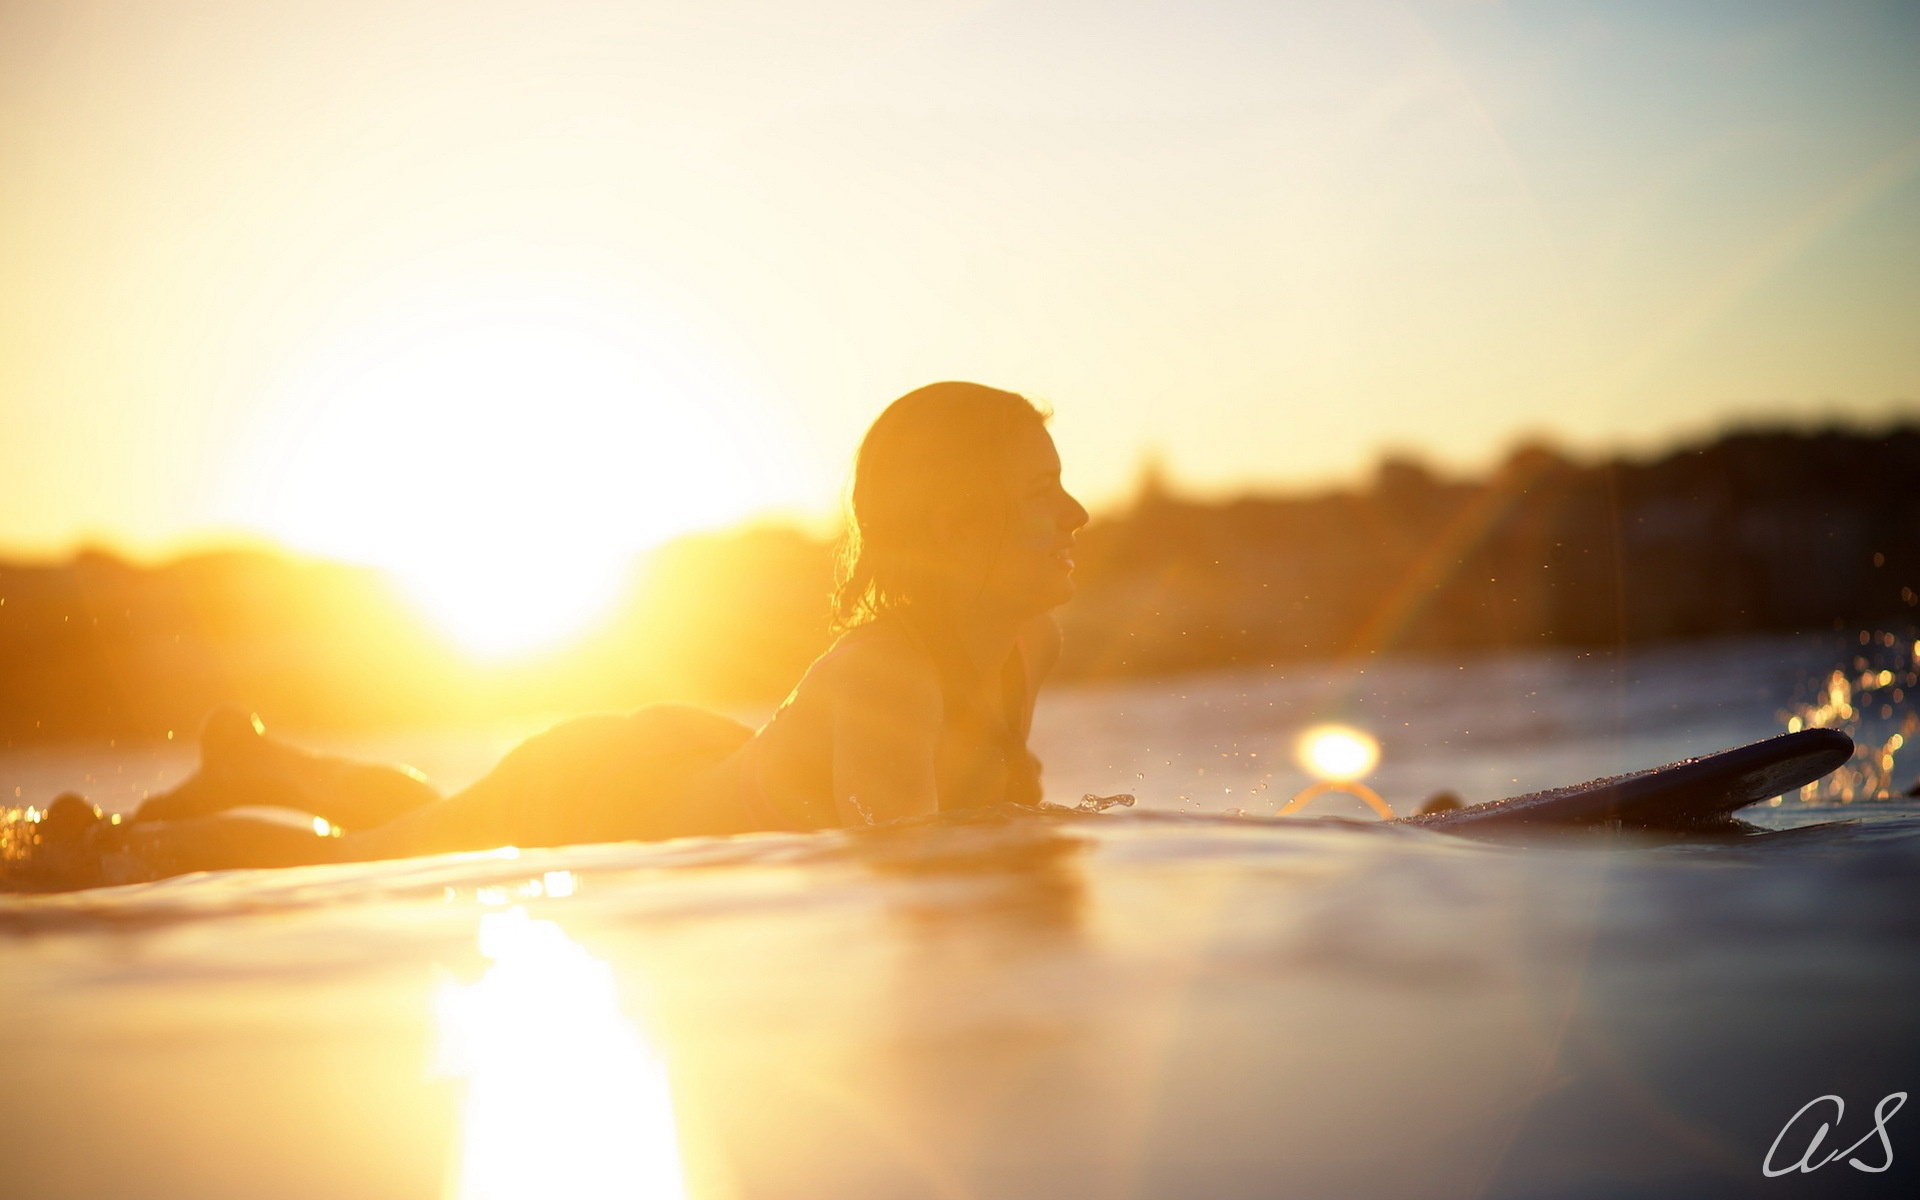 Board light girl sport surfing wallpaper 1920x1200 177757 1920x1200